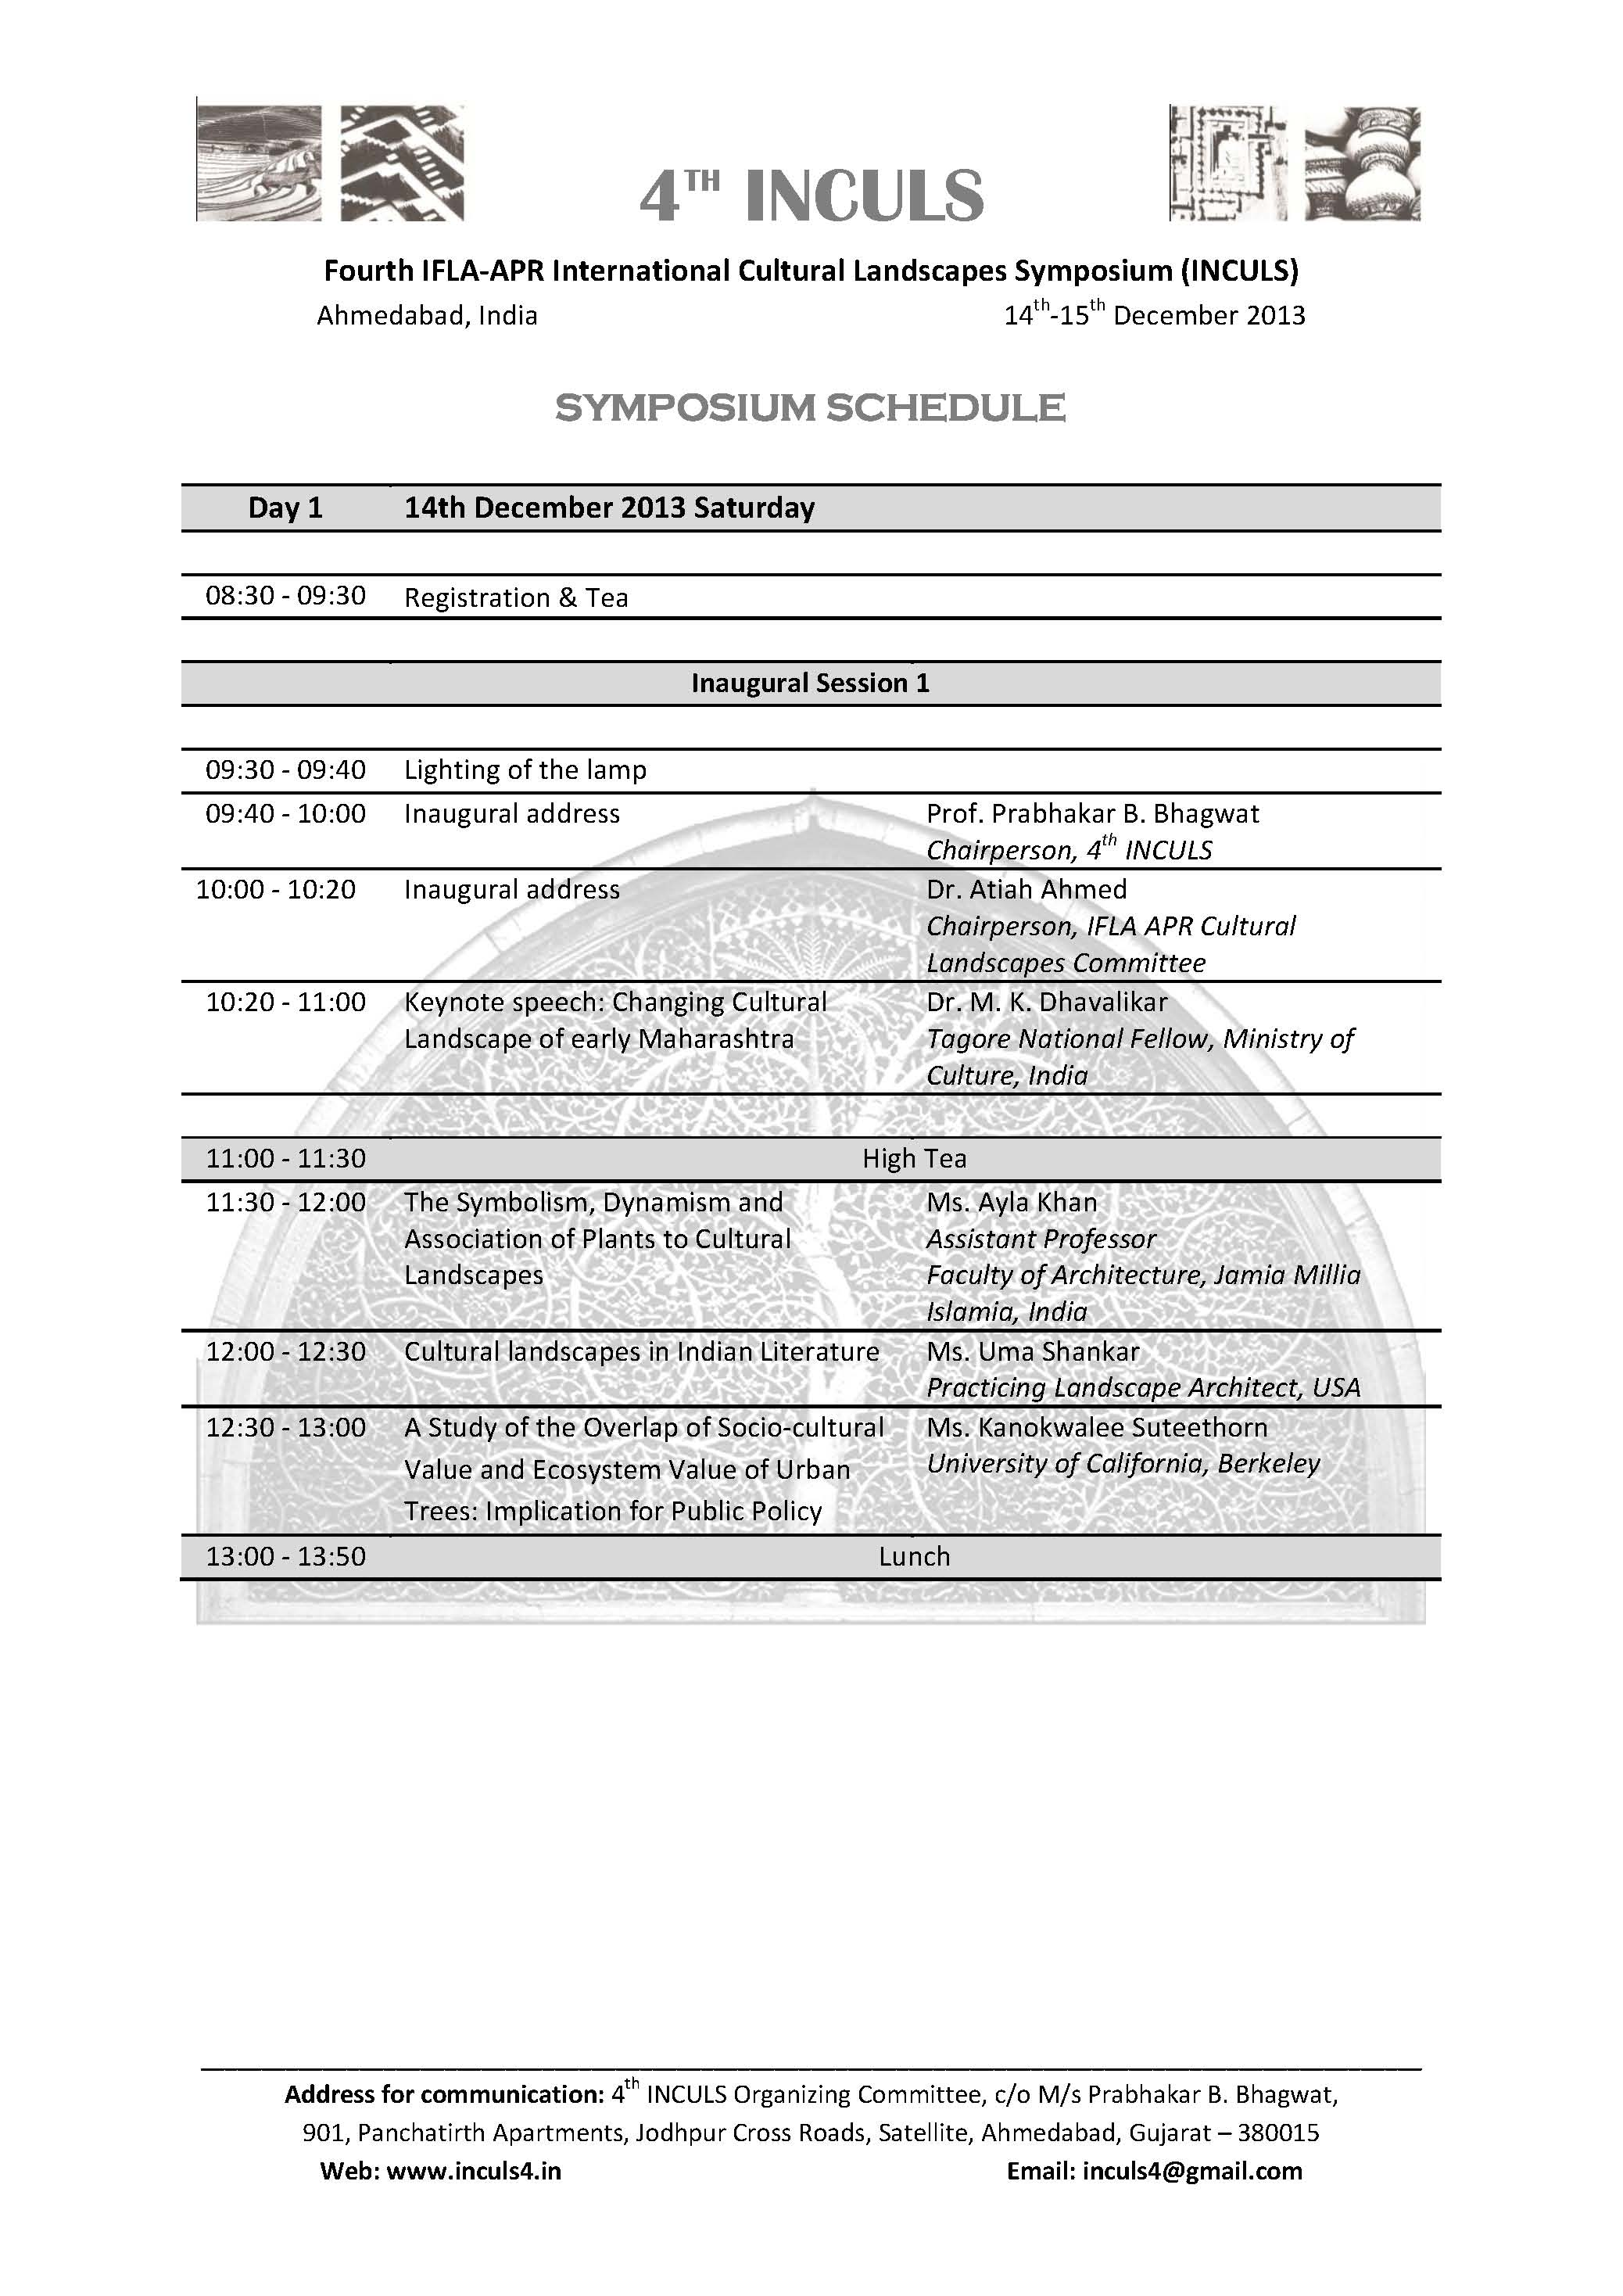 4 INCULS Schedule R02_Page_1